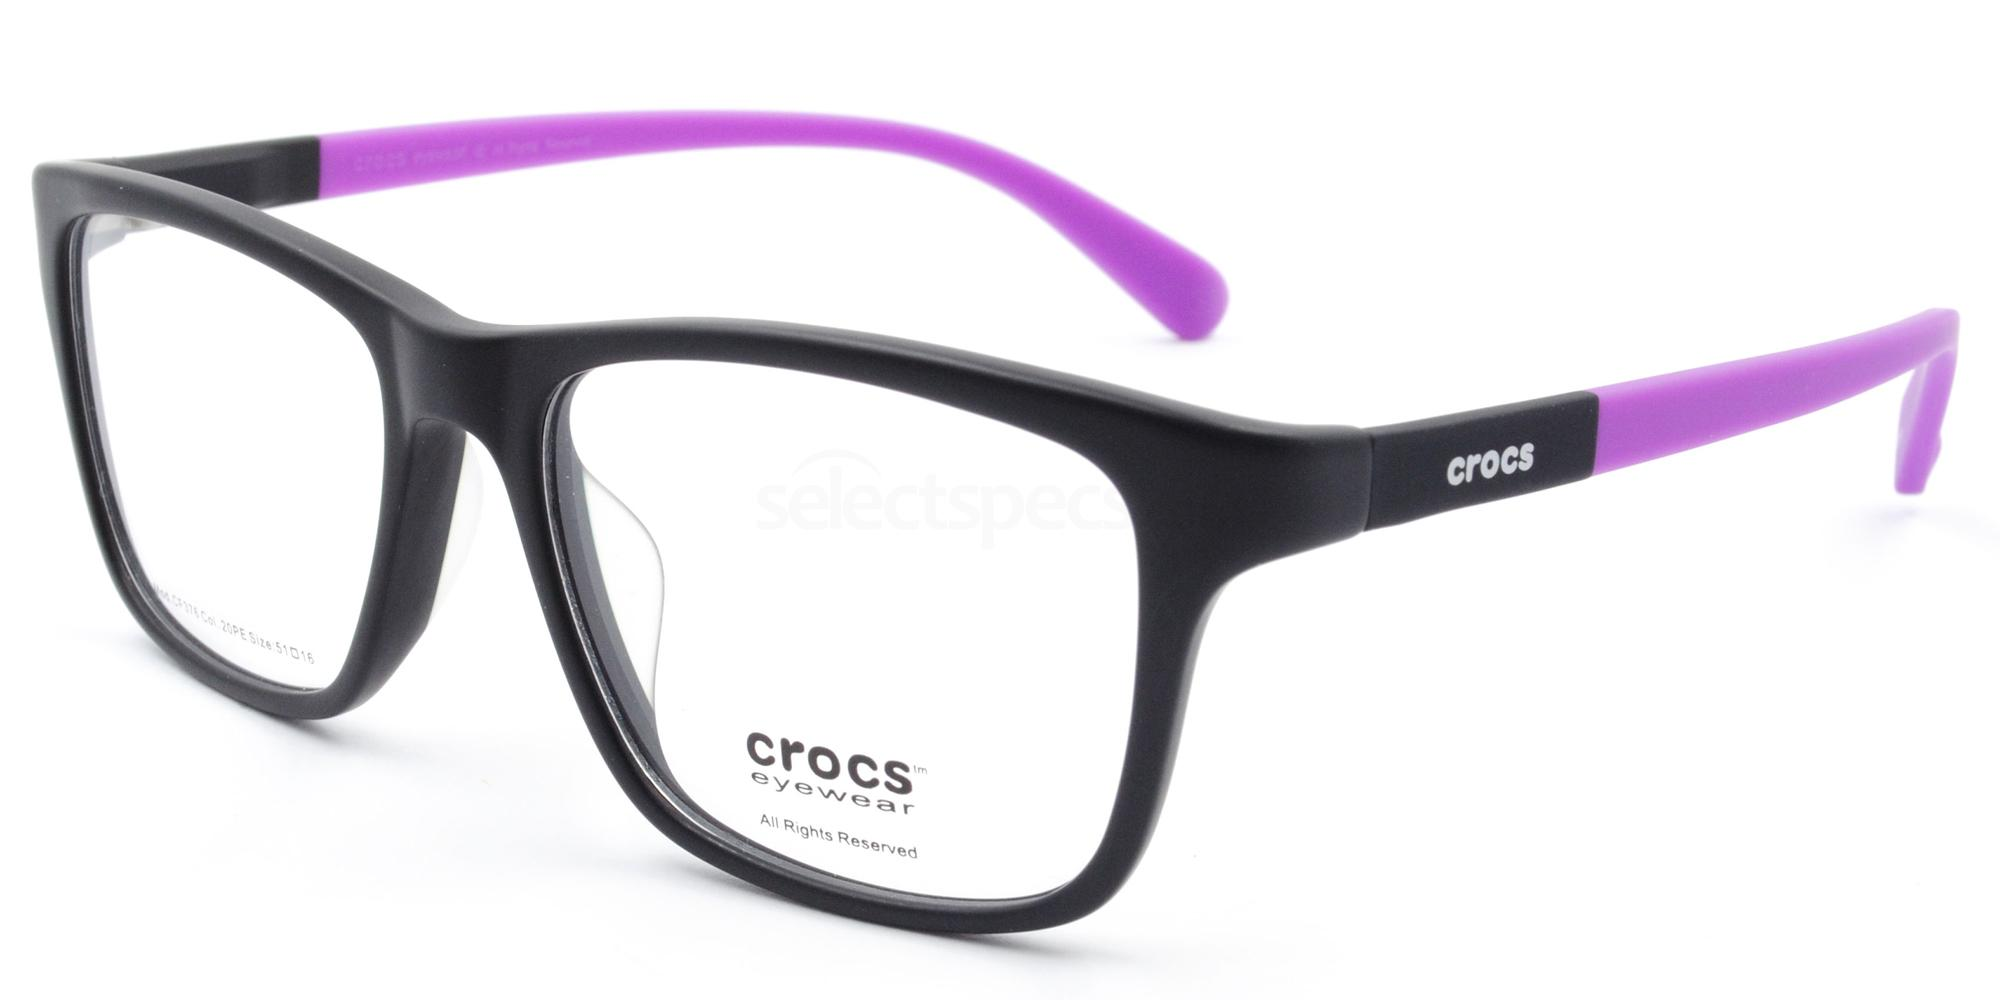 20PE CF 376 Glasses, Crocs Eyewear